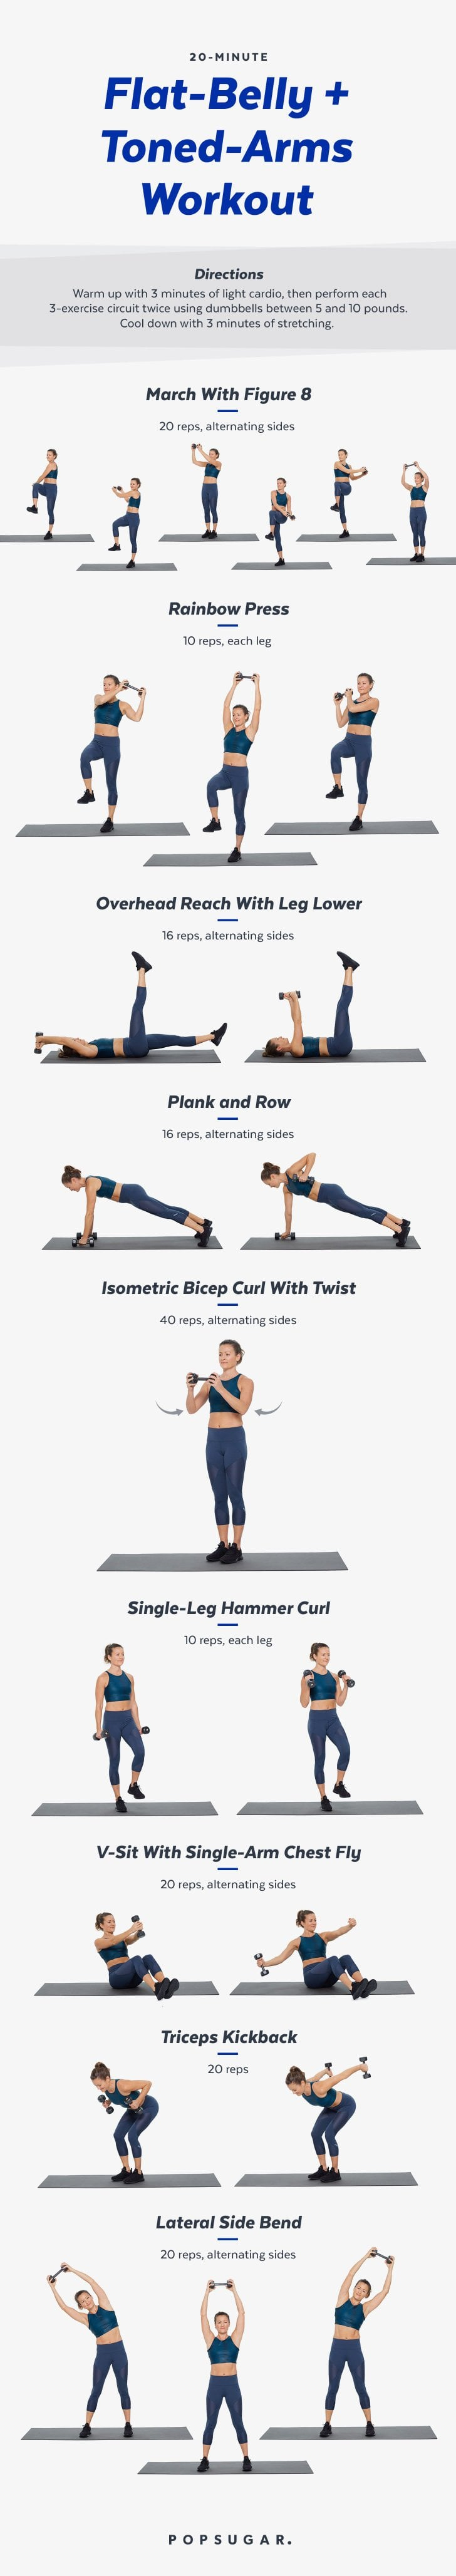 Add Some Weights to Your Arms and Abs Workout